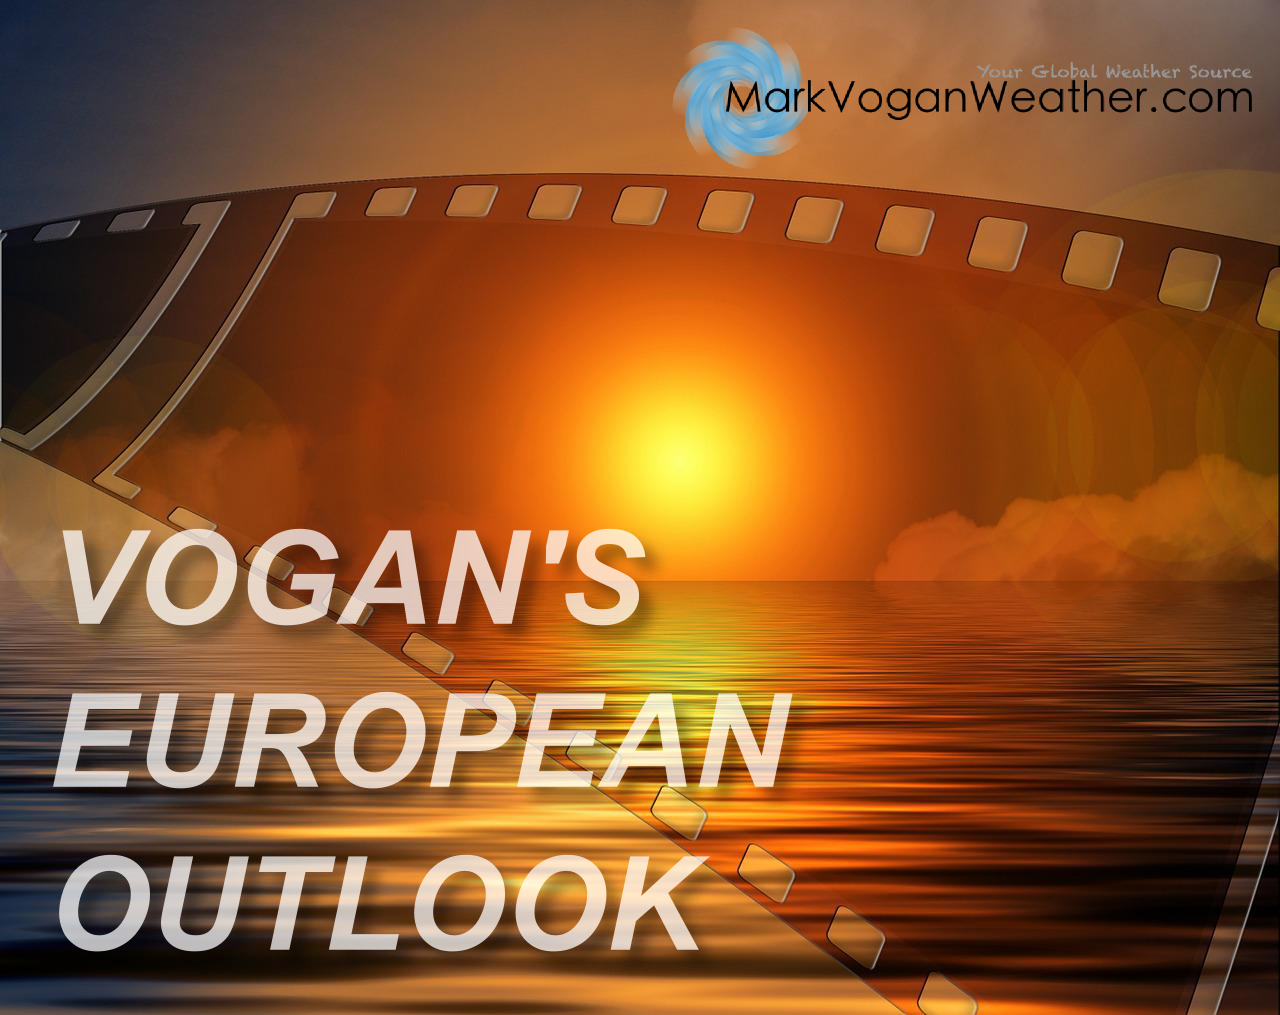 MON 1 SEP: VOGAN'S EUROPEAN OUTLOOK